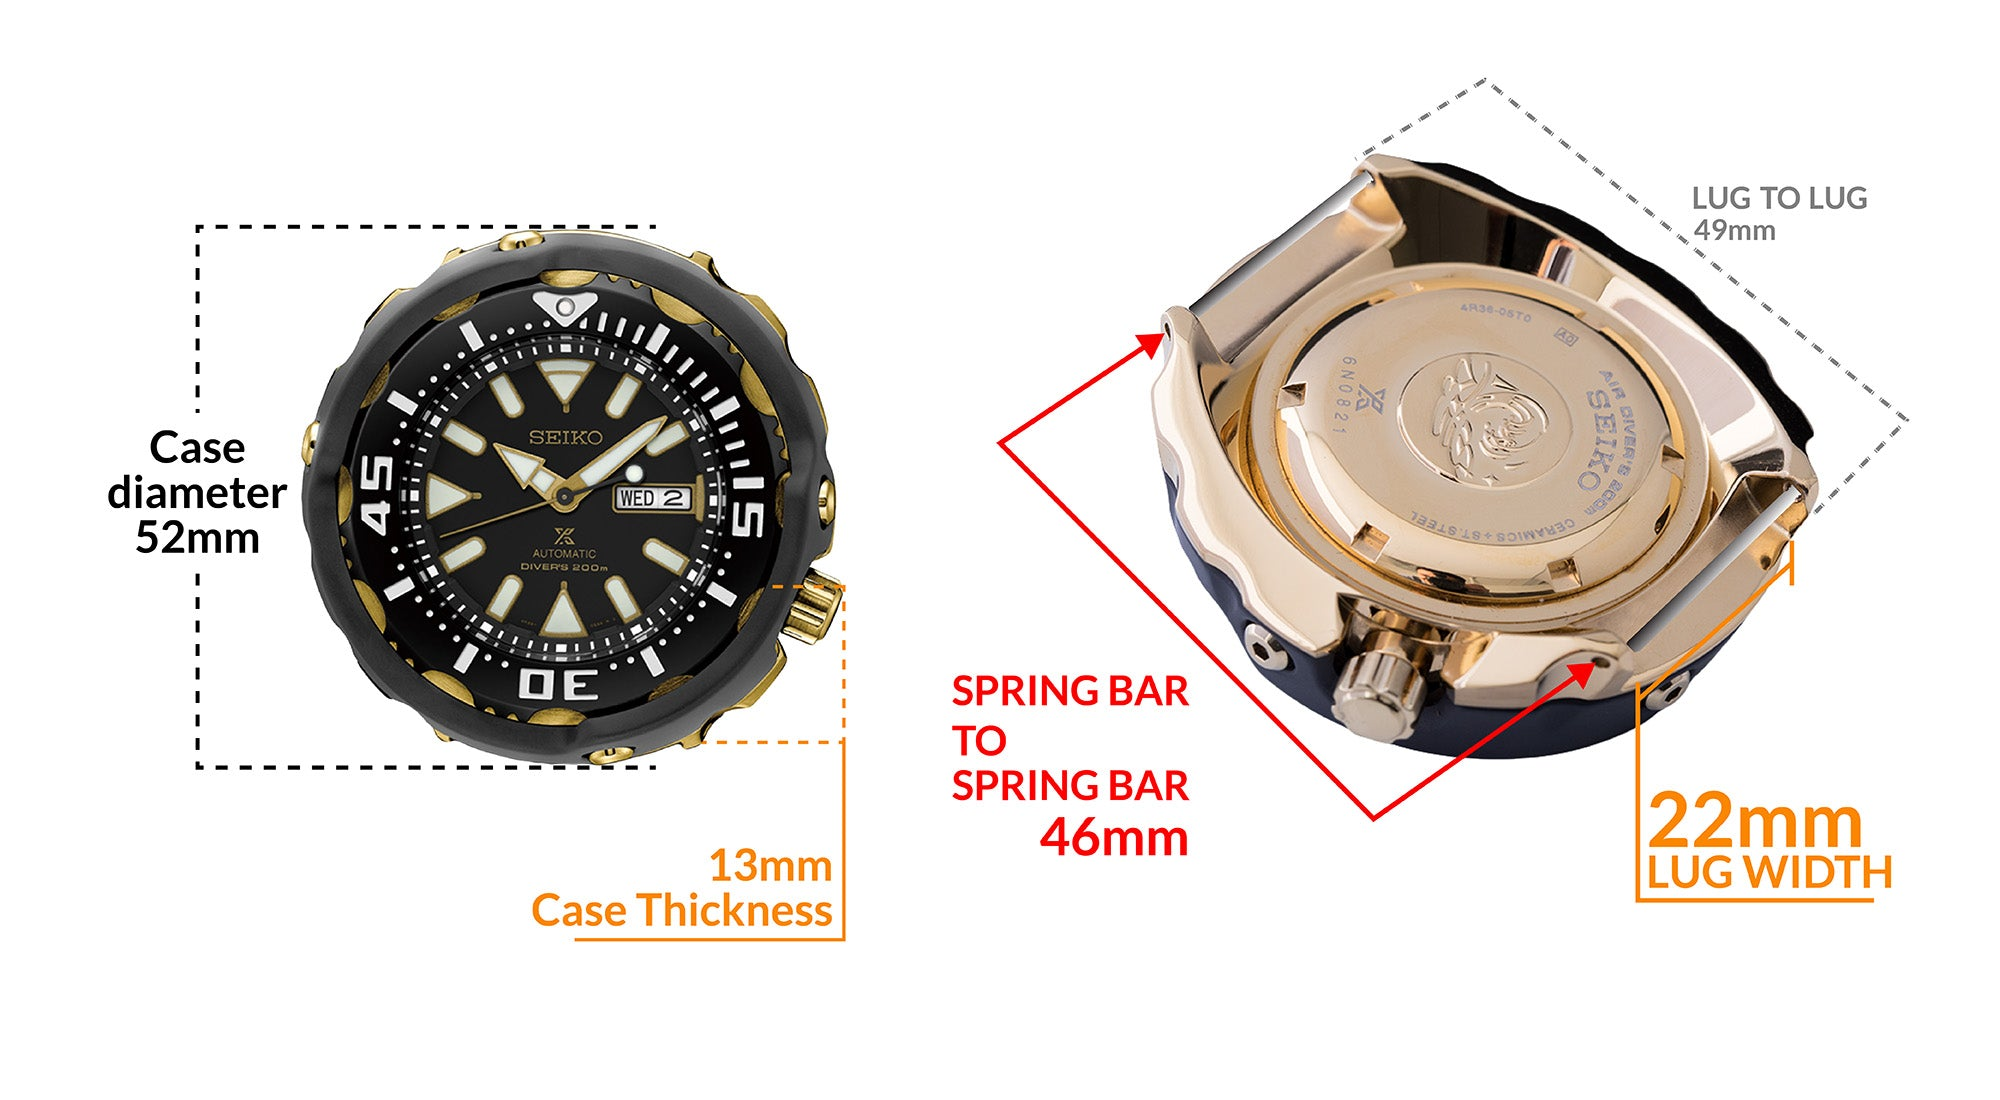 Seiko Baby Tuna Prospex Divers Automatic Men's Watch SRPA82K1 - Details watch case measurement and dimensions